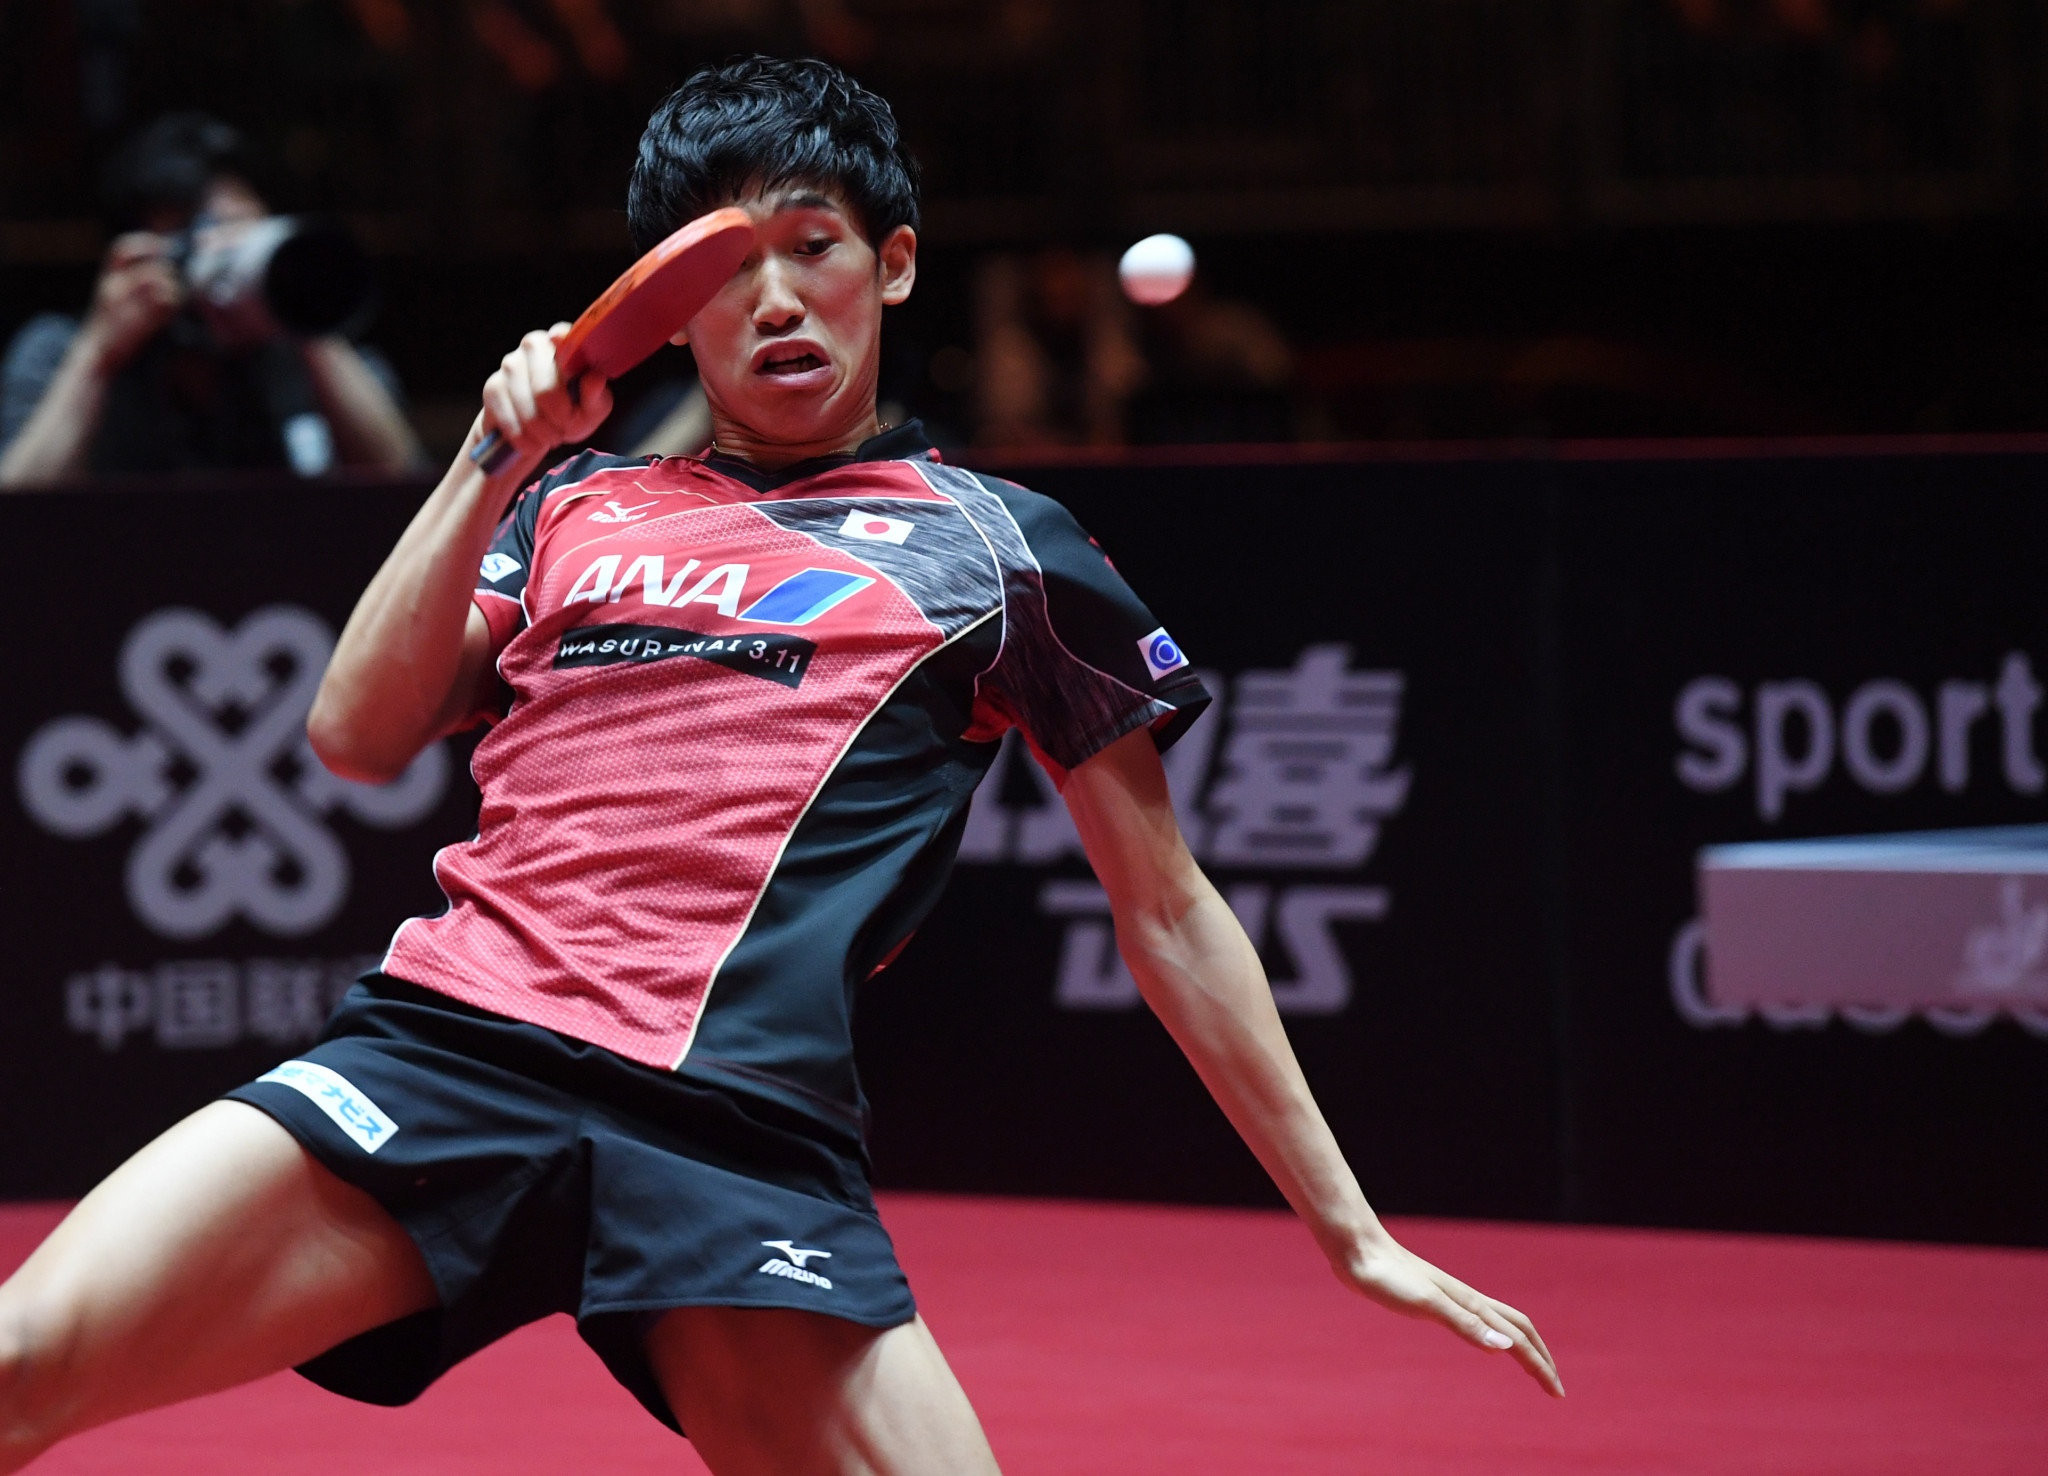 Maharu Yoshimura beat Zhang Jike in the first round in Hong Kong ©Getty Images